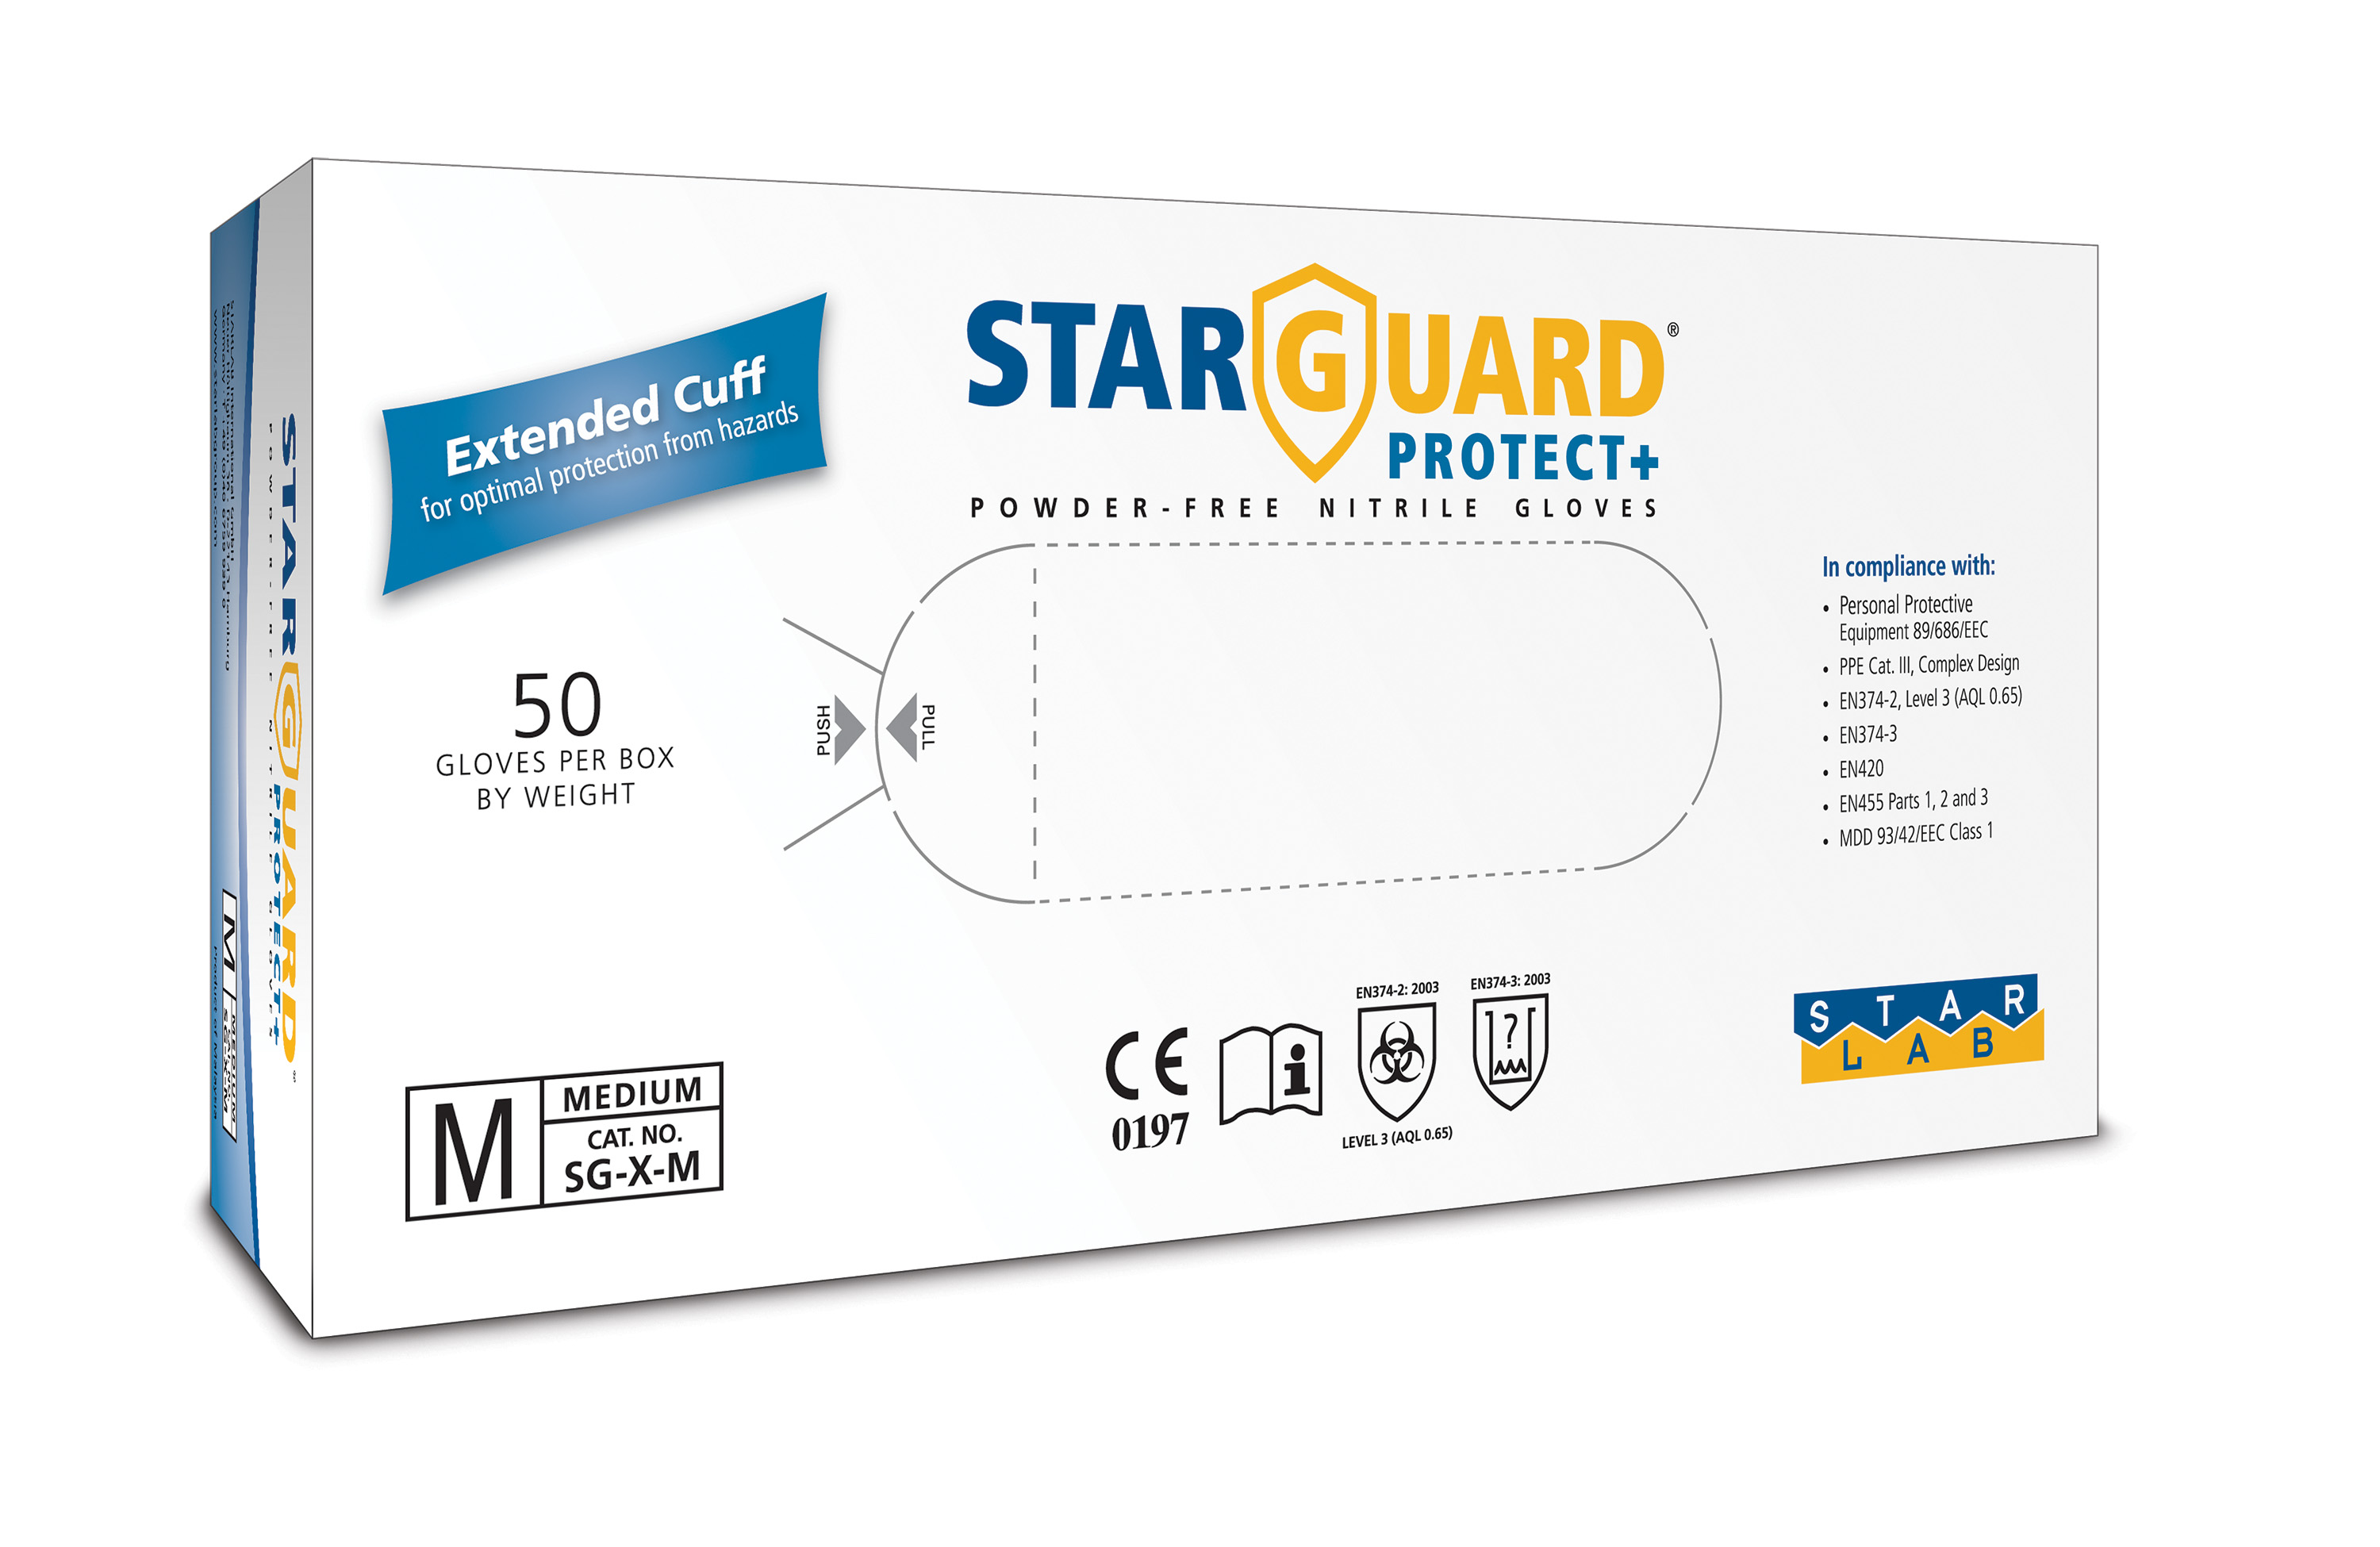 Life Systems Design :: StarGuard PROTECT+ Nitrile Gloves, Powder